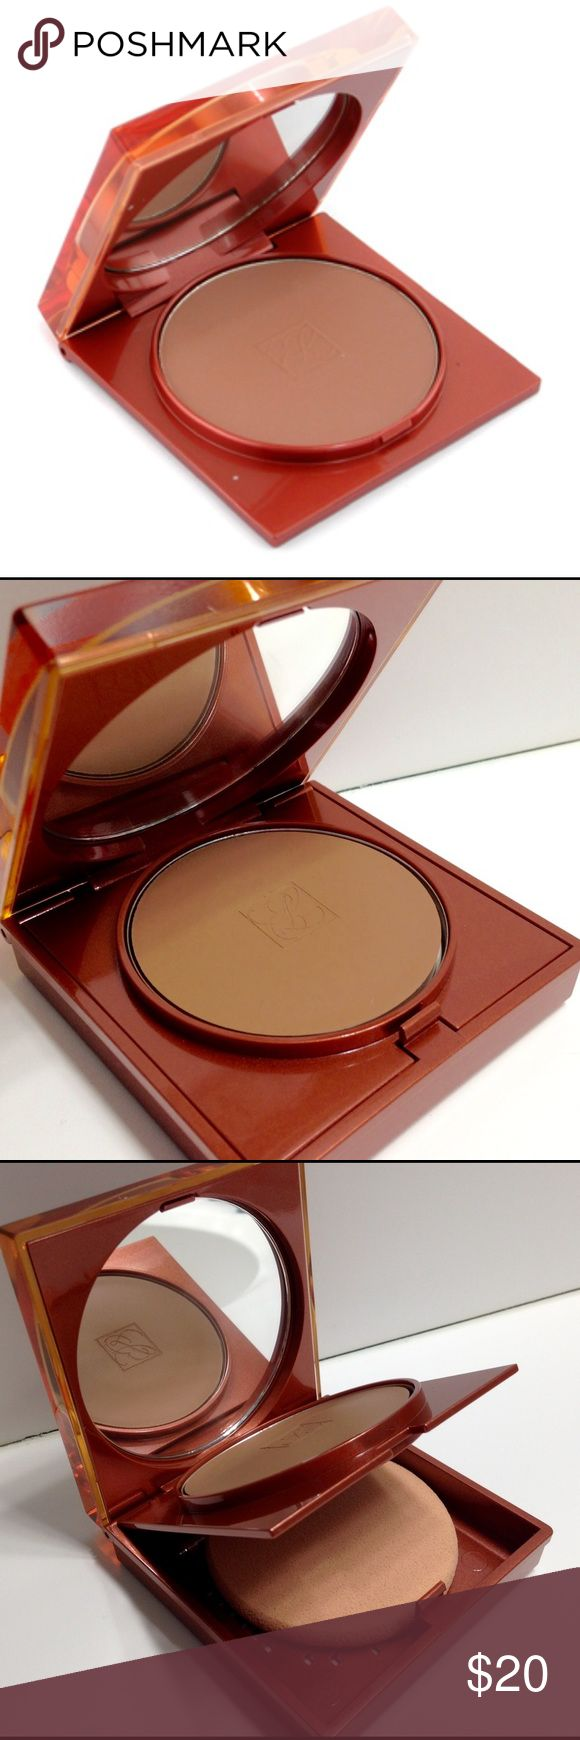 Estee Lauder Amber Bronze Bronzer Creme Compact A lightweight, creamy bronzer. Refined texture that easily glides onto skin. Quickly gives you a gorgeous tan look. Leaves you a sensual, healthy, radiant glow. Protects skin from the damage of UV rays. Product unused, no box Estee Lauder Makeup Bronzer